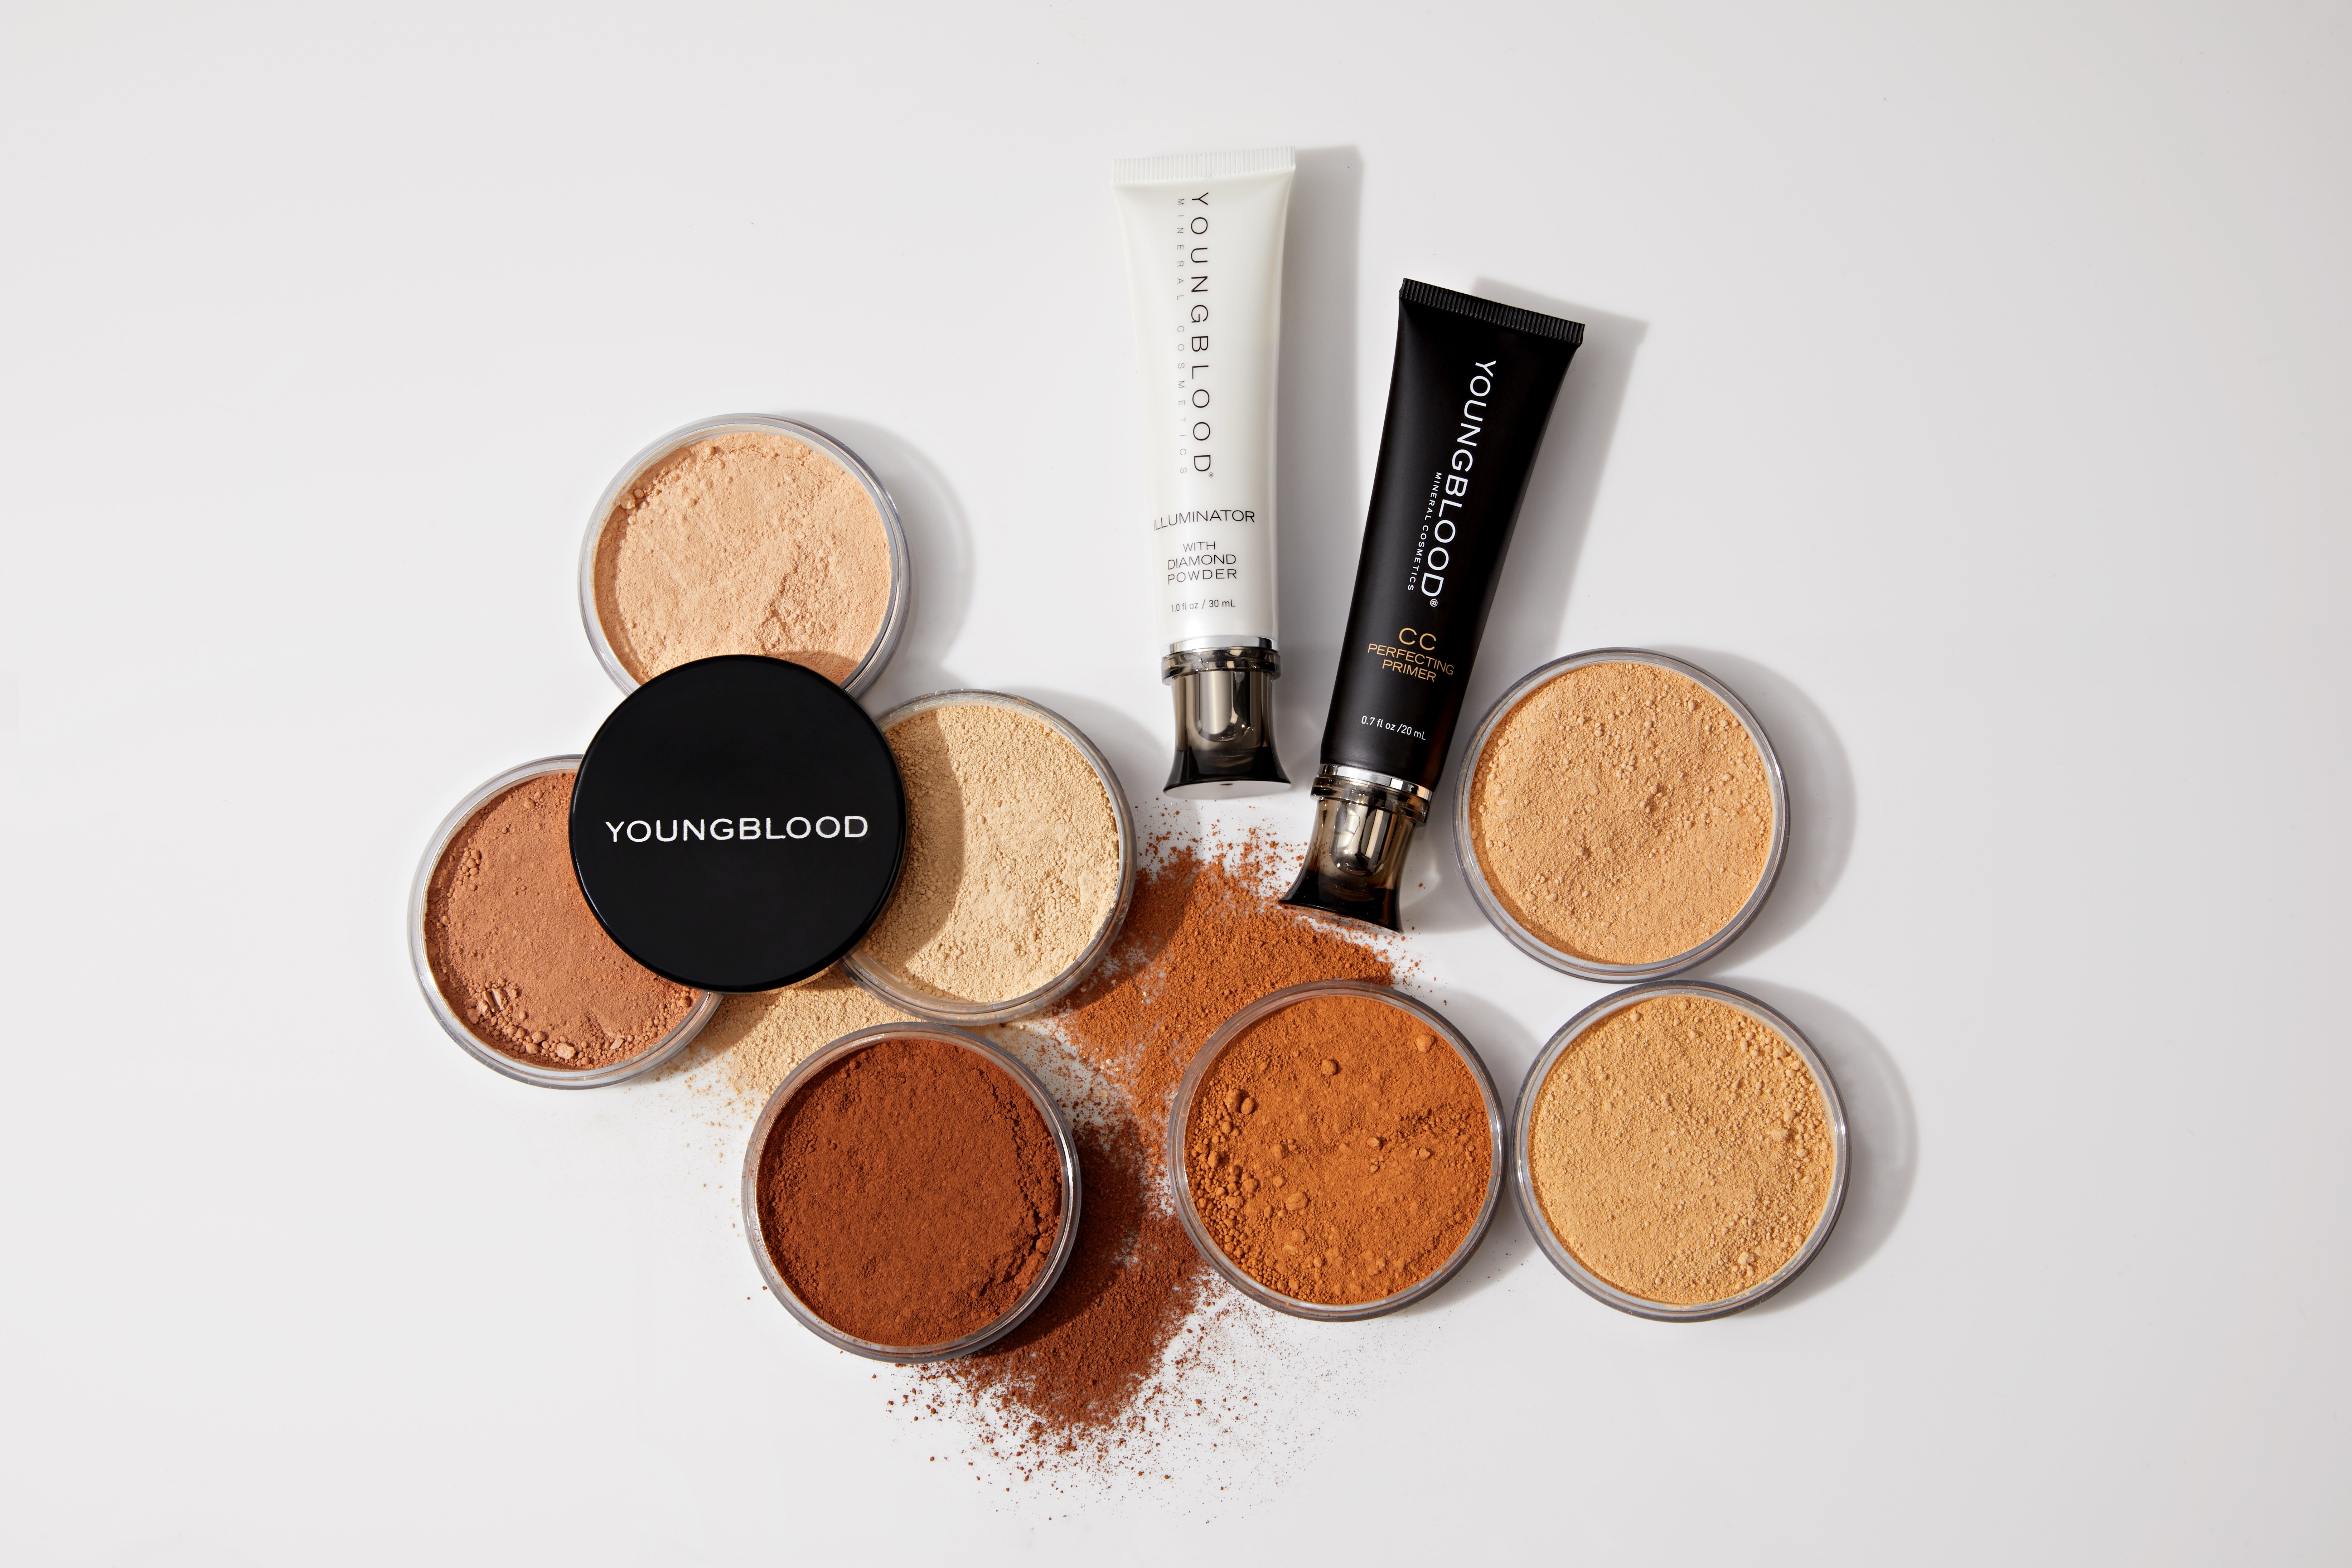 Youngblood Mineral Cosmetics Linkedin